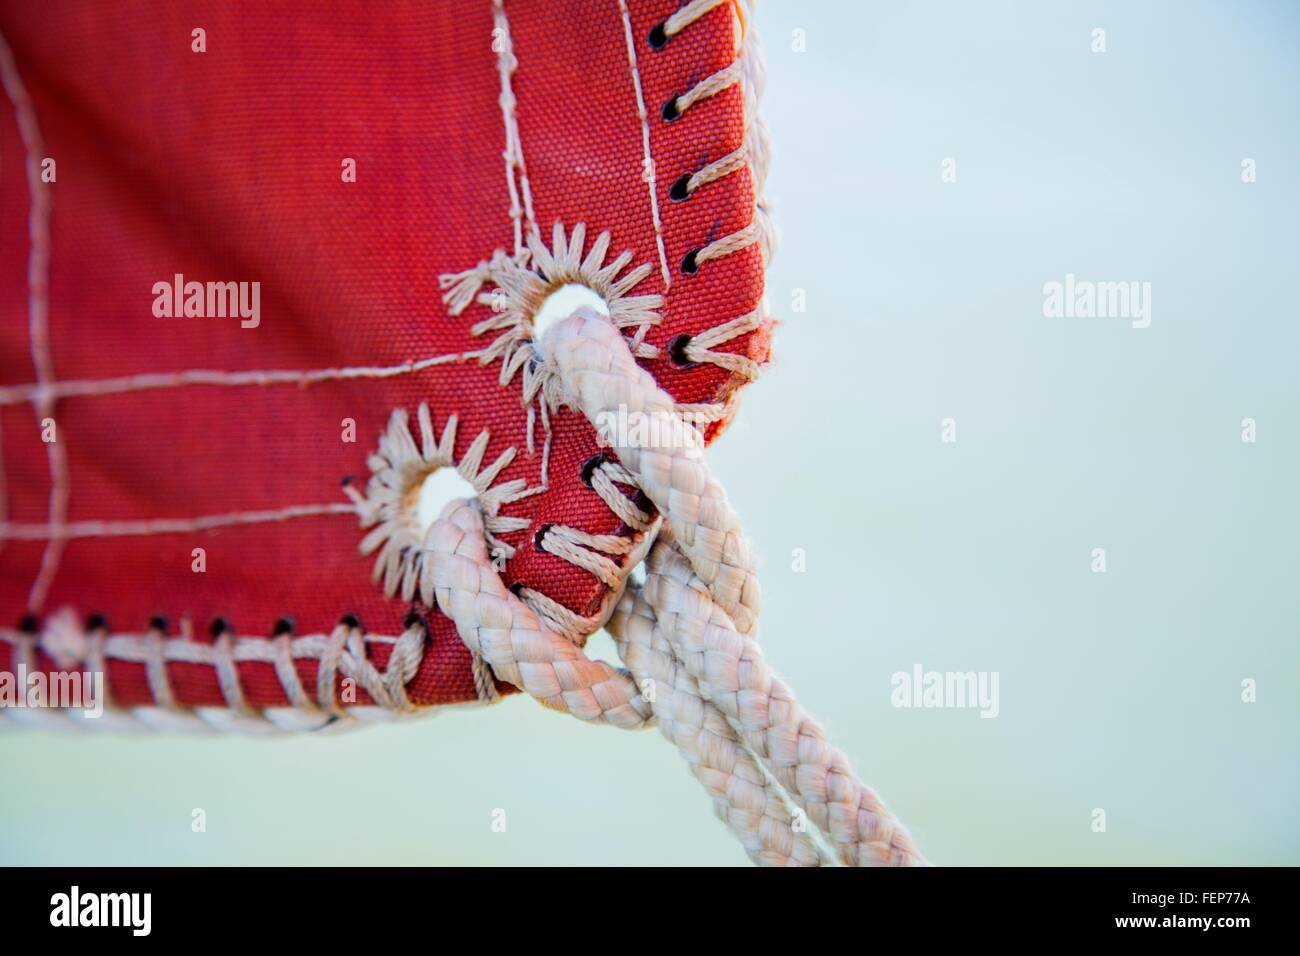 Sail and knot of rope on sailing boat, close-up - Stock Image